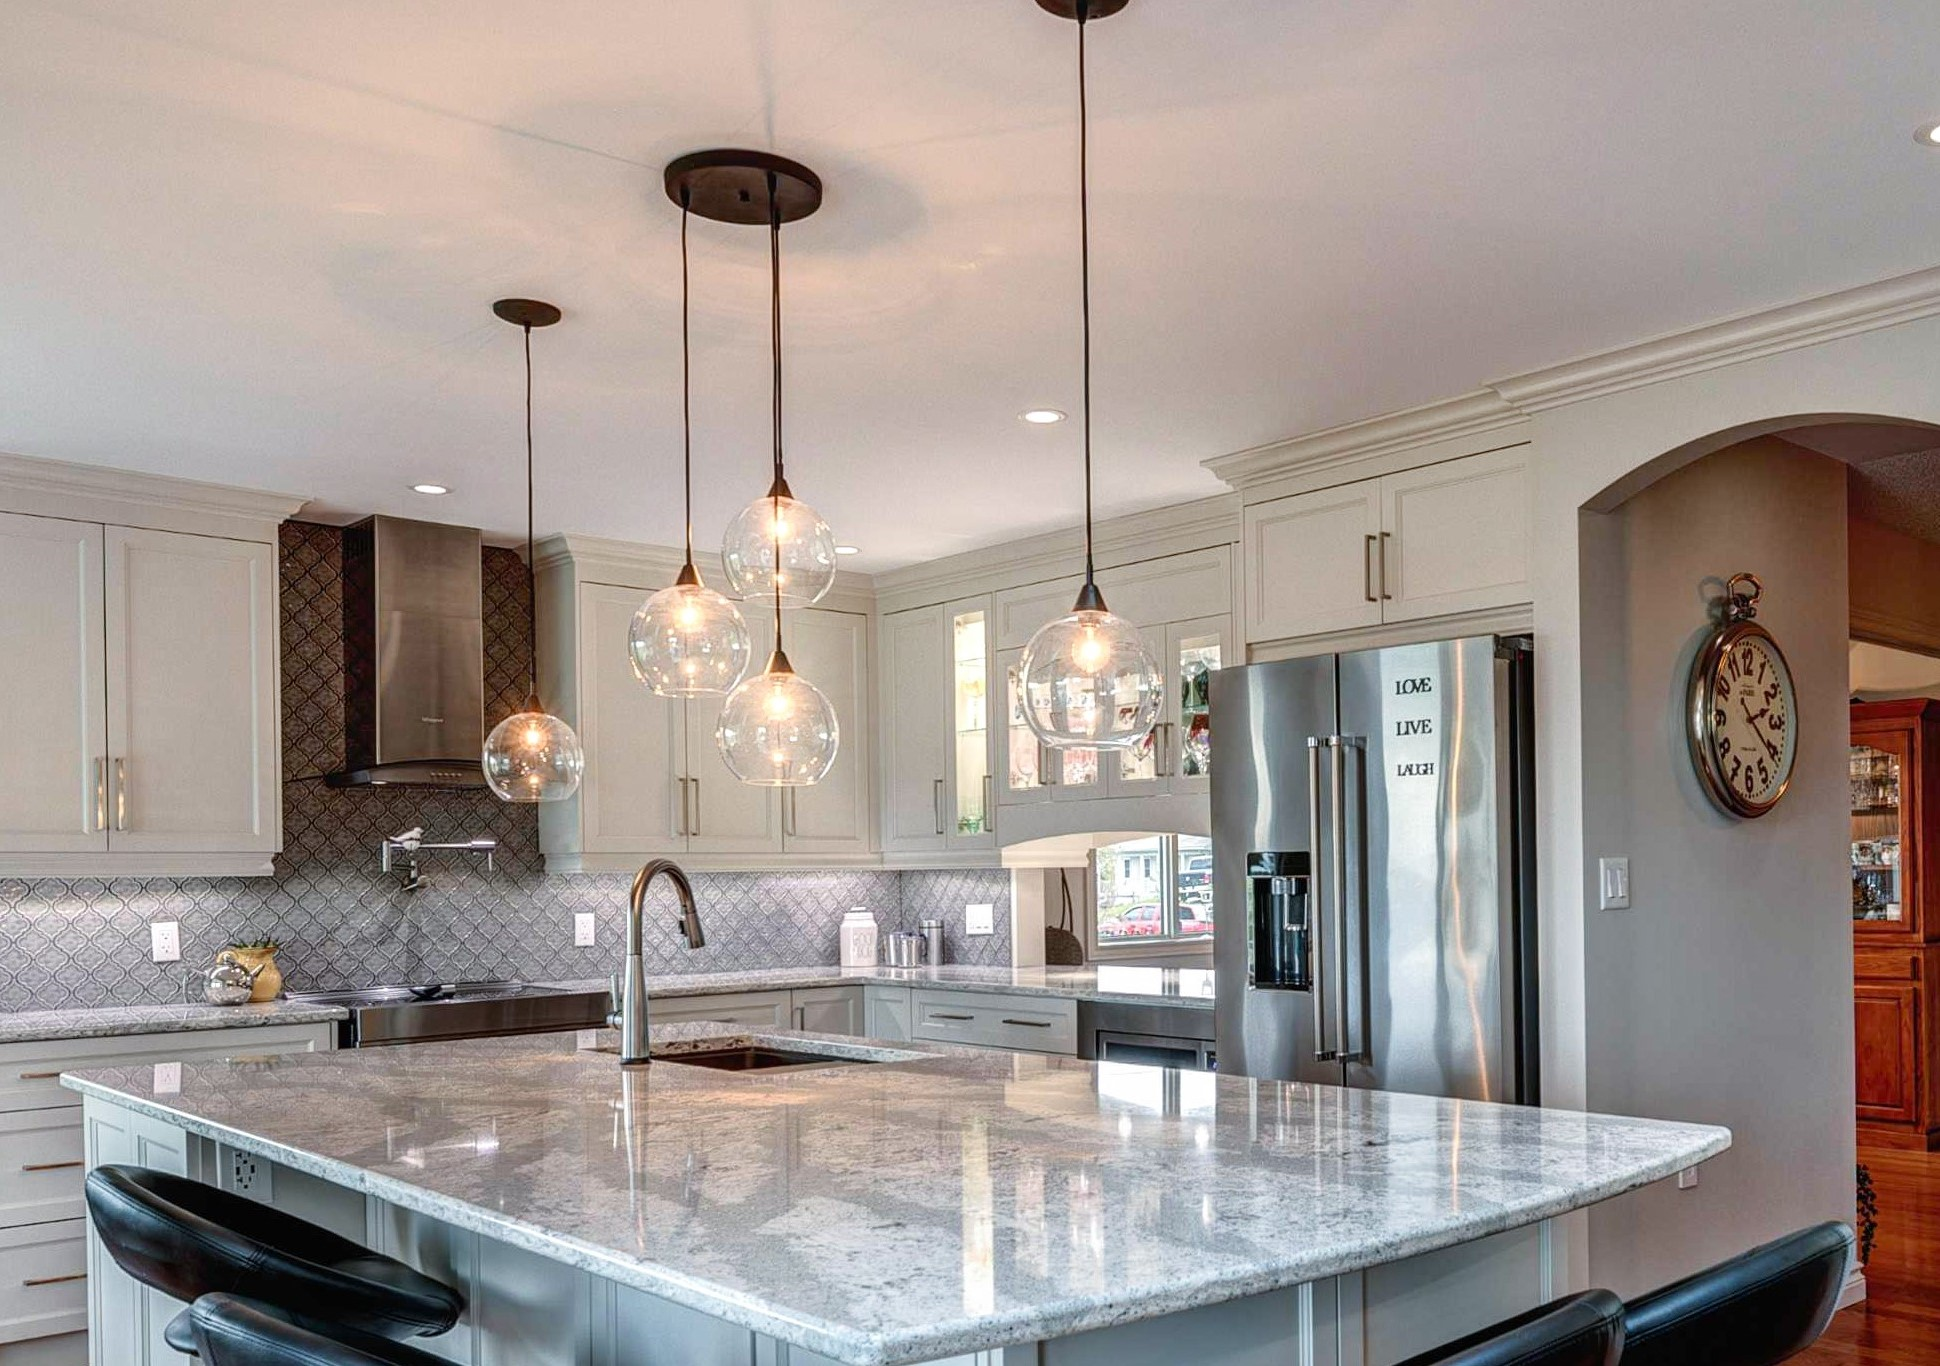 Lighting a kitchen Island or Peninsula